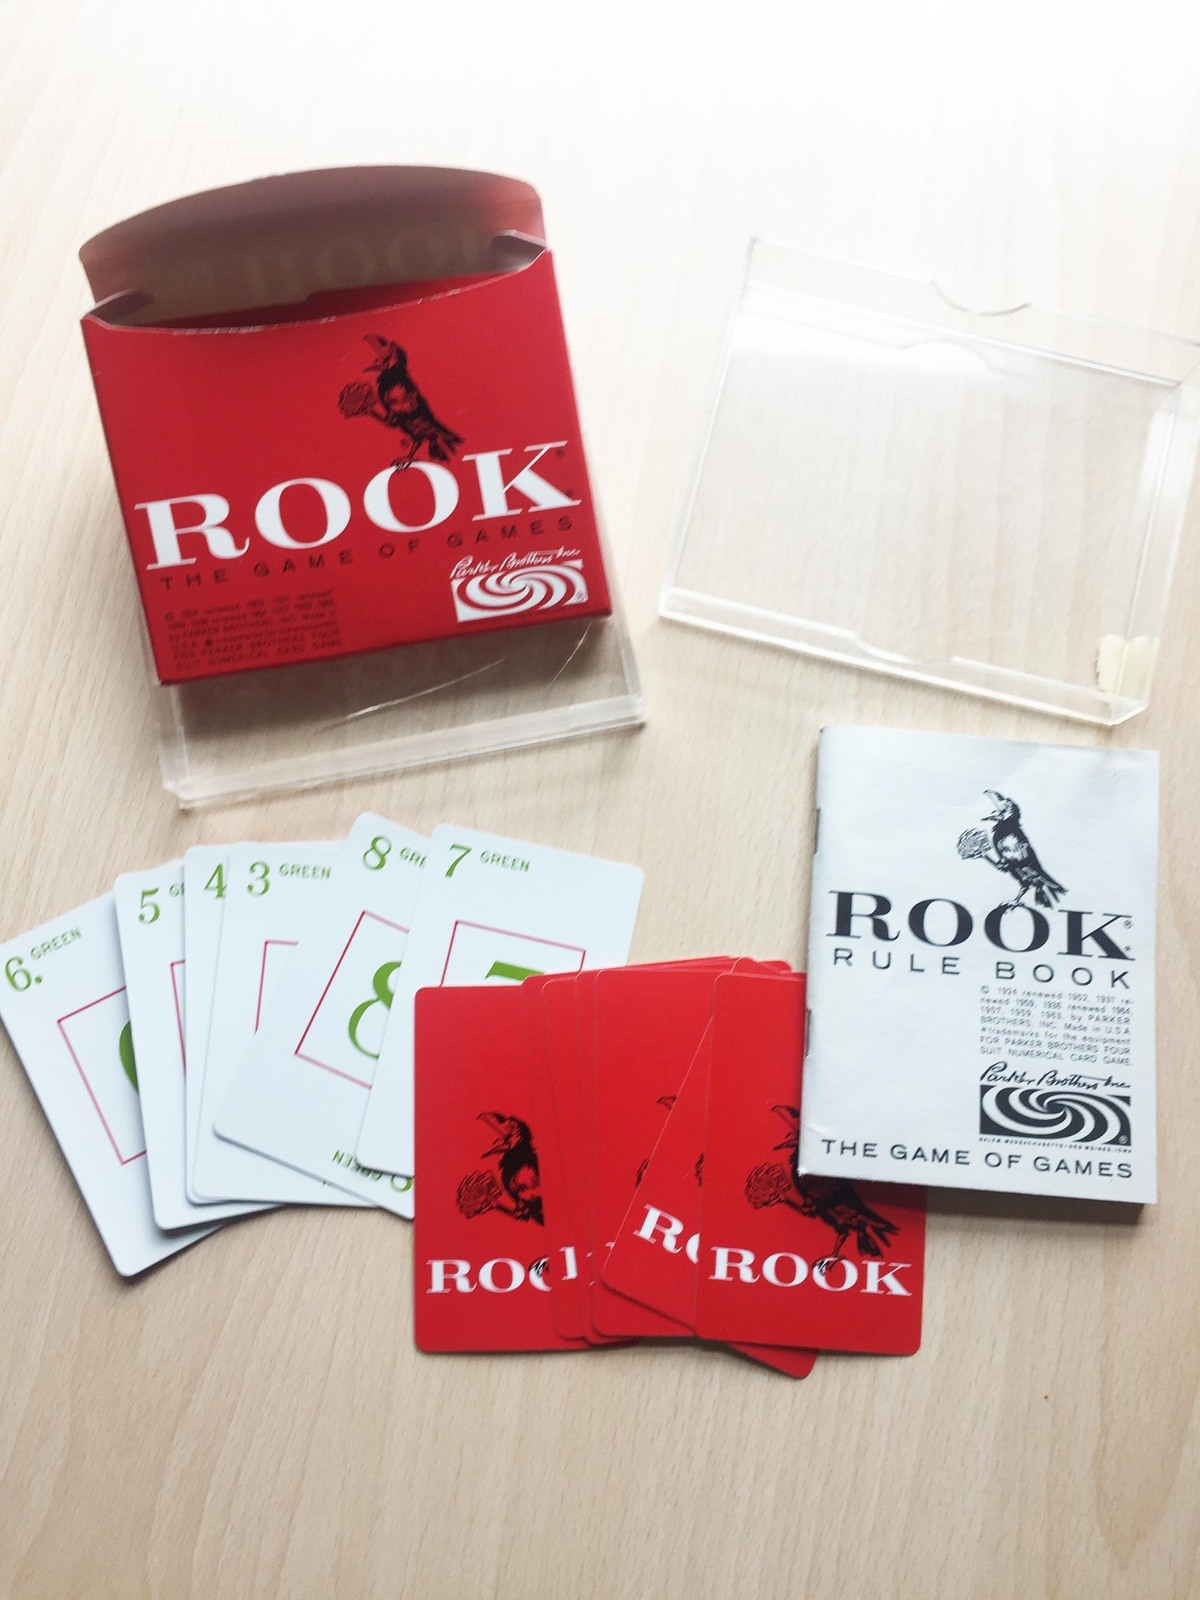 Primary image for 1963 ROOK (The Game of Games) Red Box Card Set in acrylic case